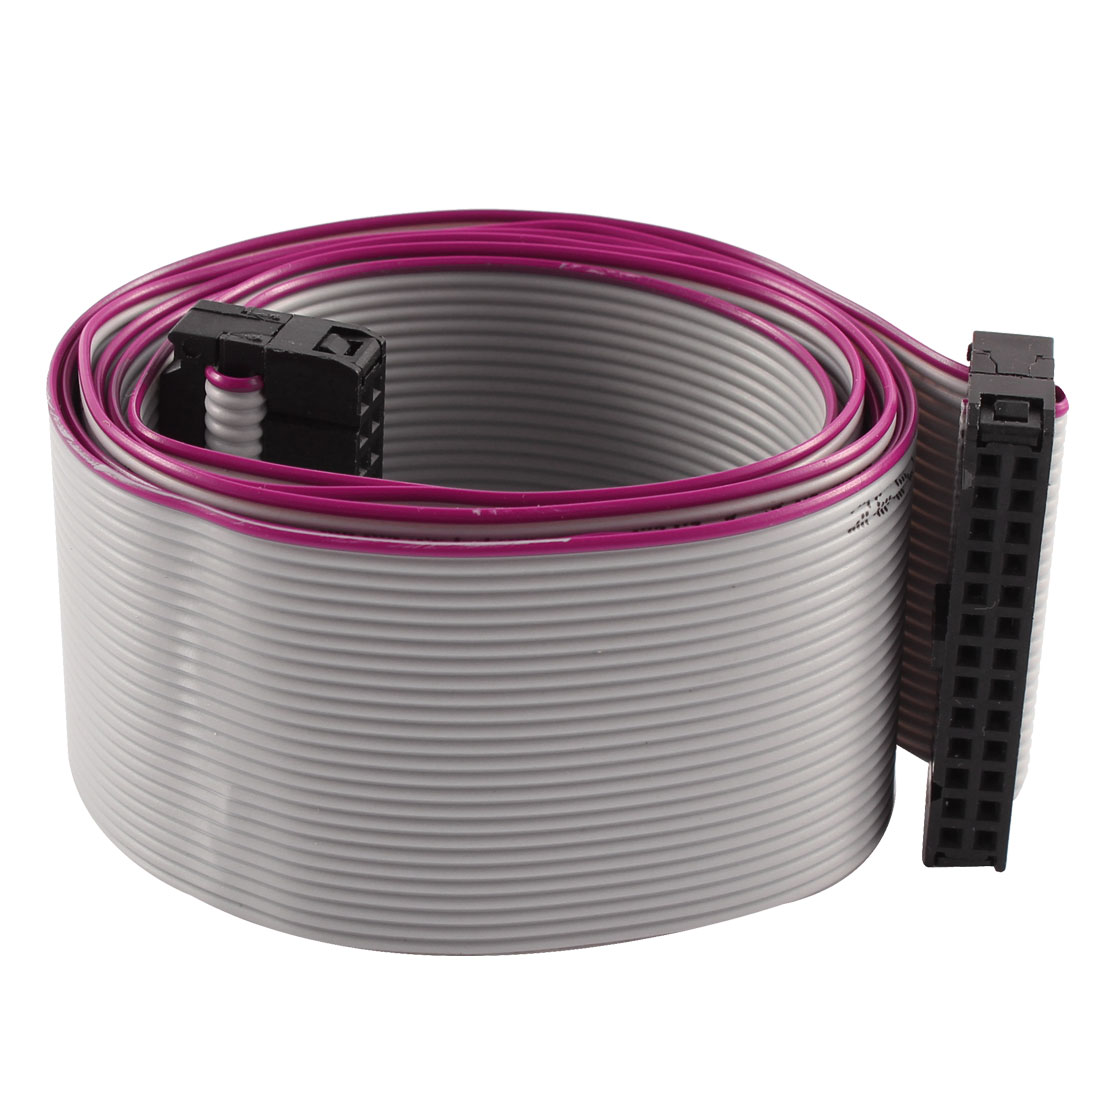 FC-26P IDC 26-Pin F/F Hard Drive Data Extension Wire Flat Ribbon Cable Connector 100cm Long for Motherboard